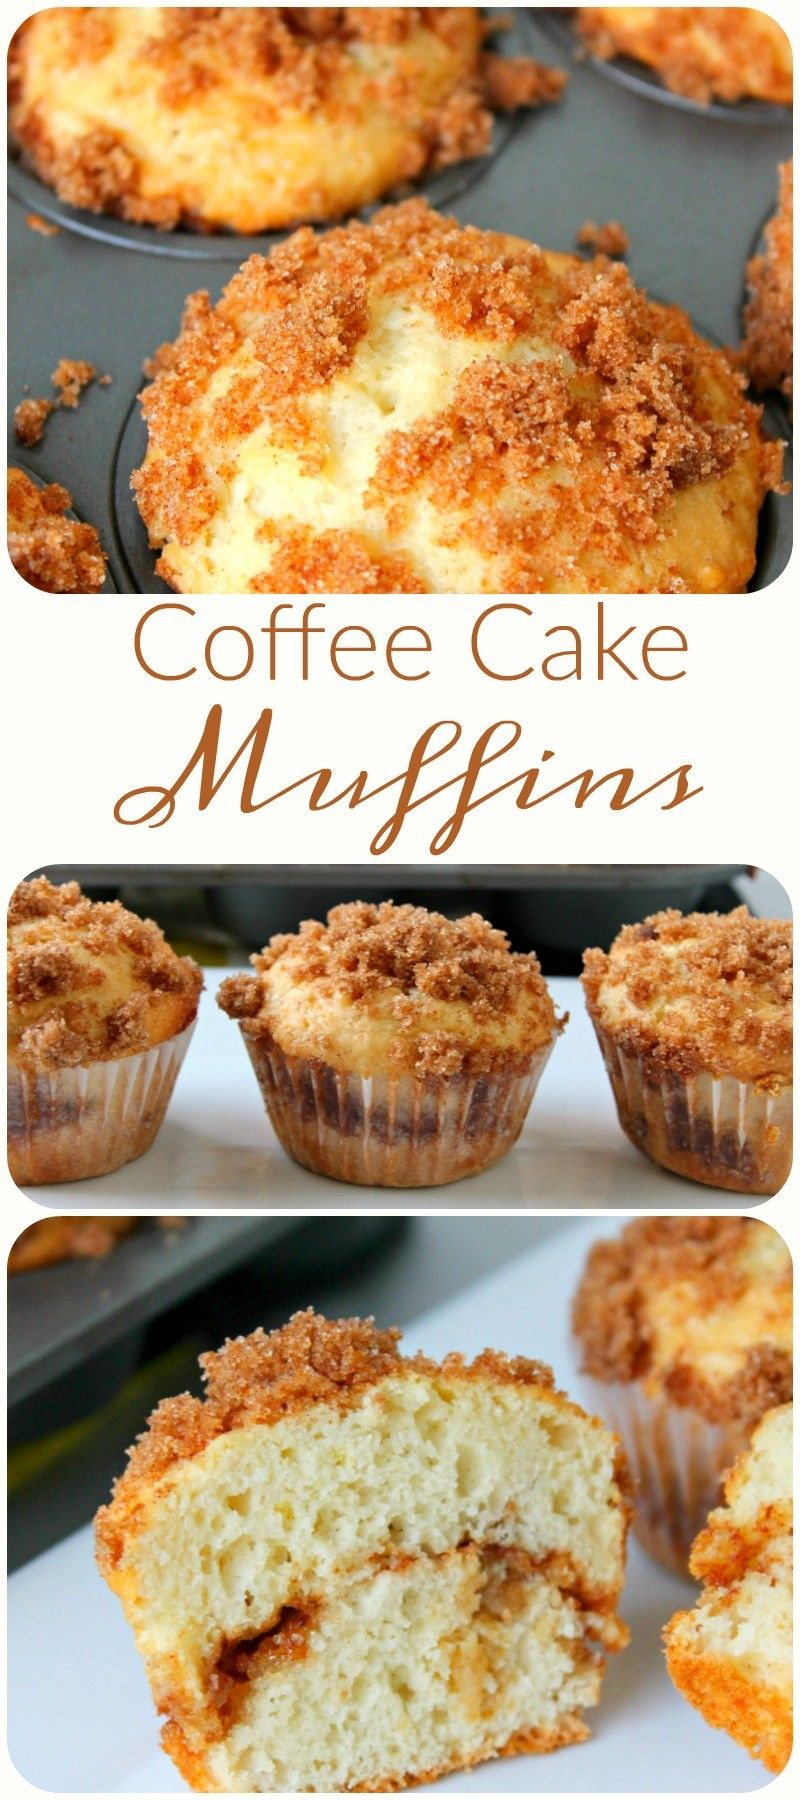 Coffee Cake Muffins Funny Is Family Recipe Coffee Cake Muffins Simple Muffin Recipe Coffee Cake Recipes